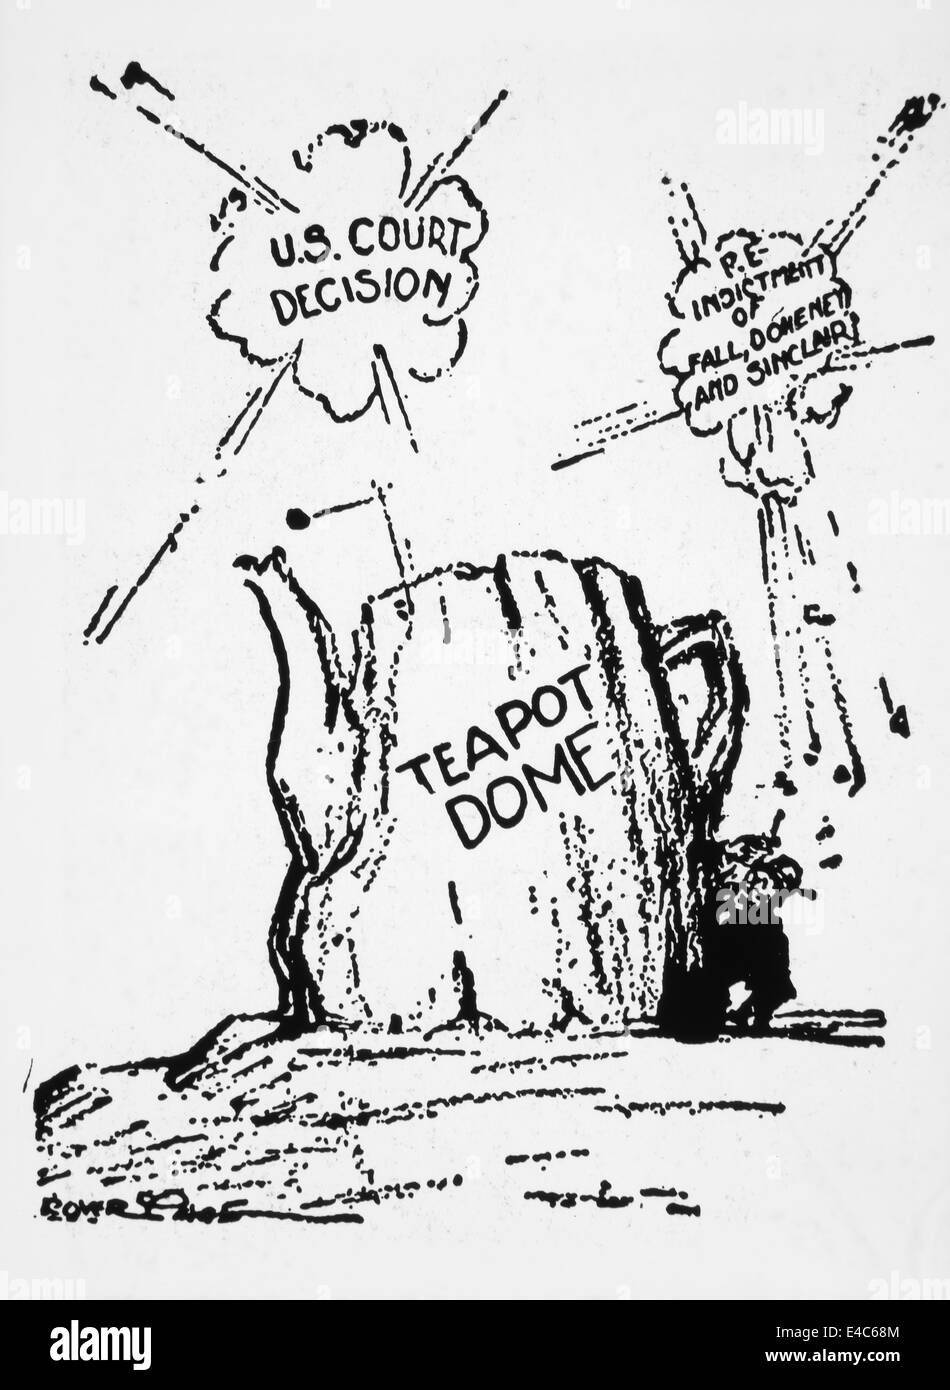 Teapot Dome Scandal Political Cartoon 1920 S Stock Photo 71568468